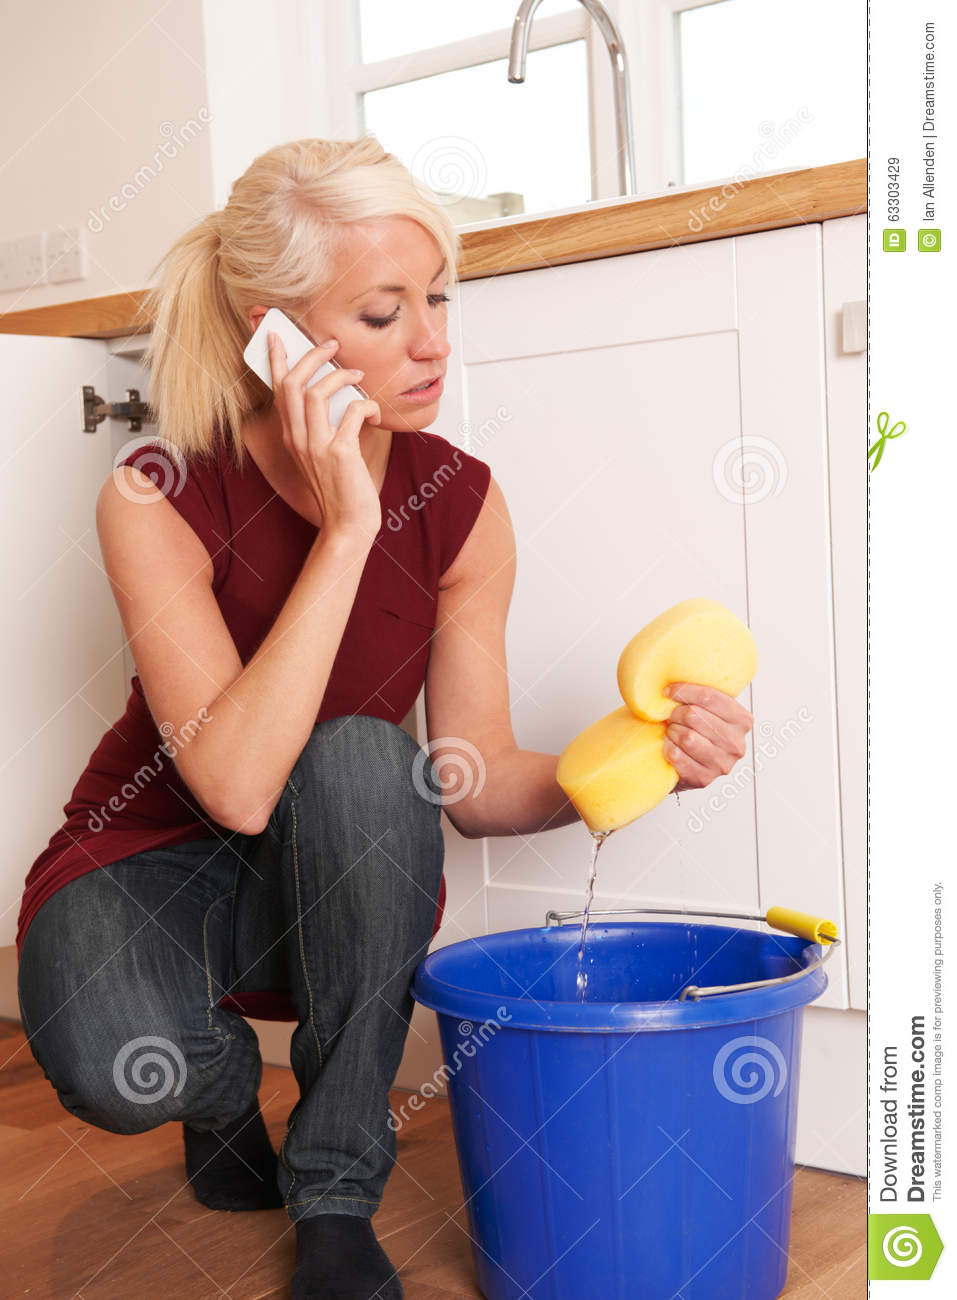 woman-mopping-up-leaking-sink-phone-to-emergency-plumber-mops-63303429.jpg